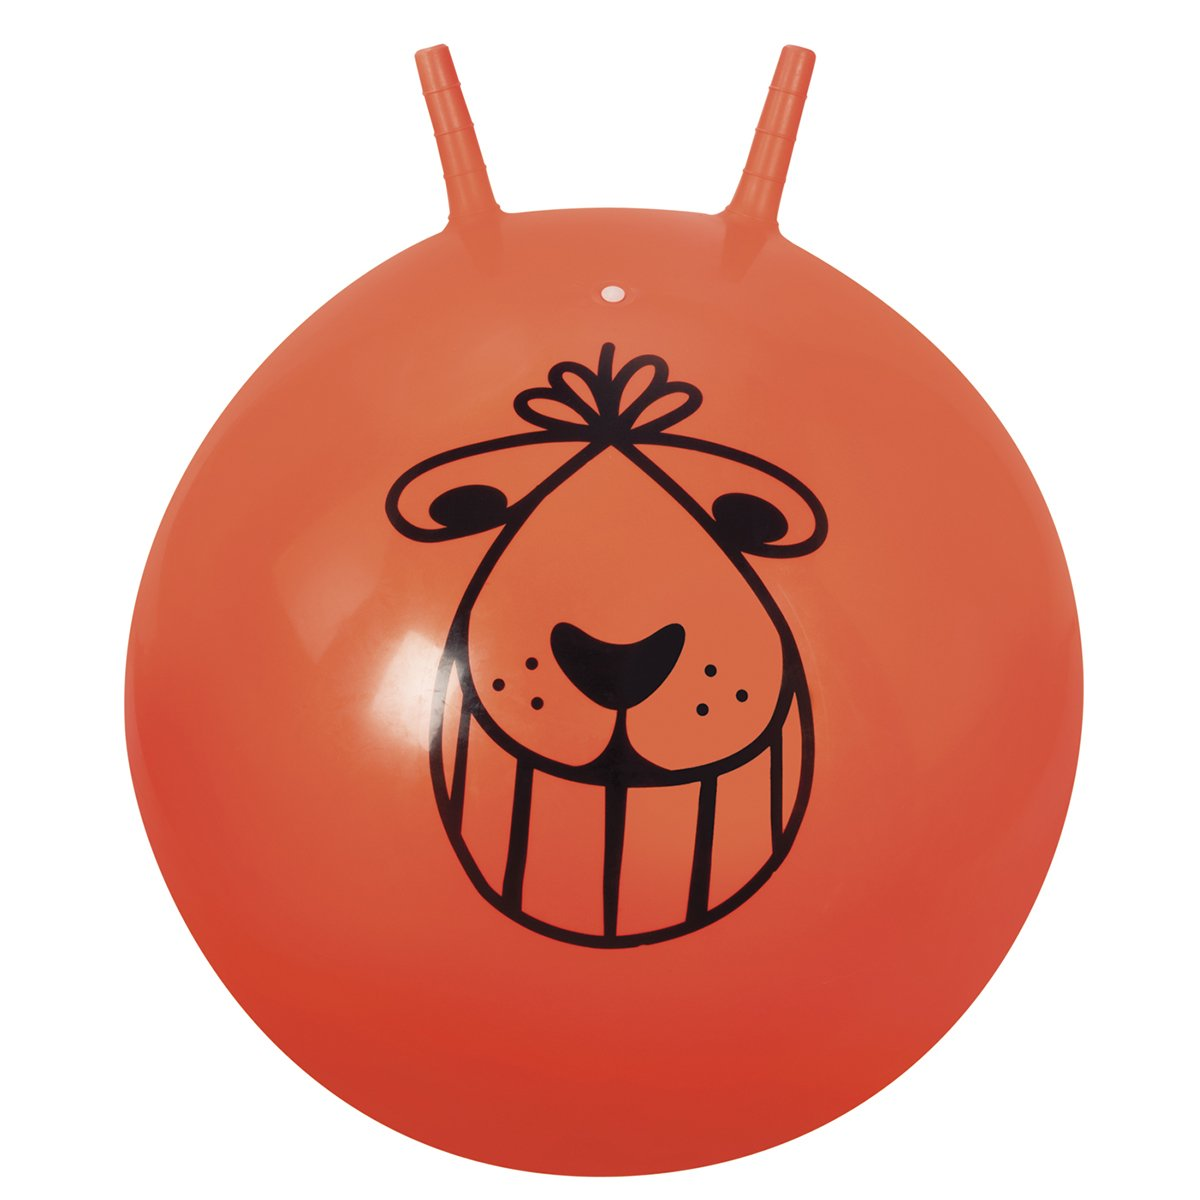 Space Hopper Ball Retro Orange Bouncing Ride on Ball colors may vary